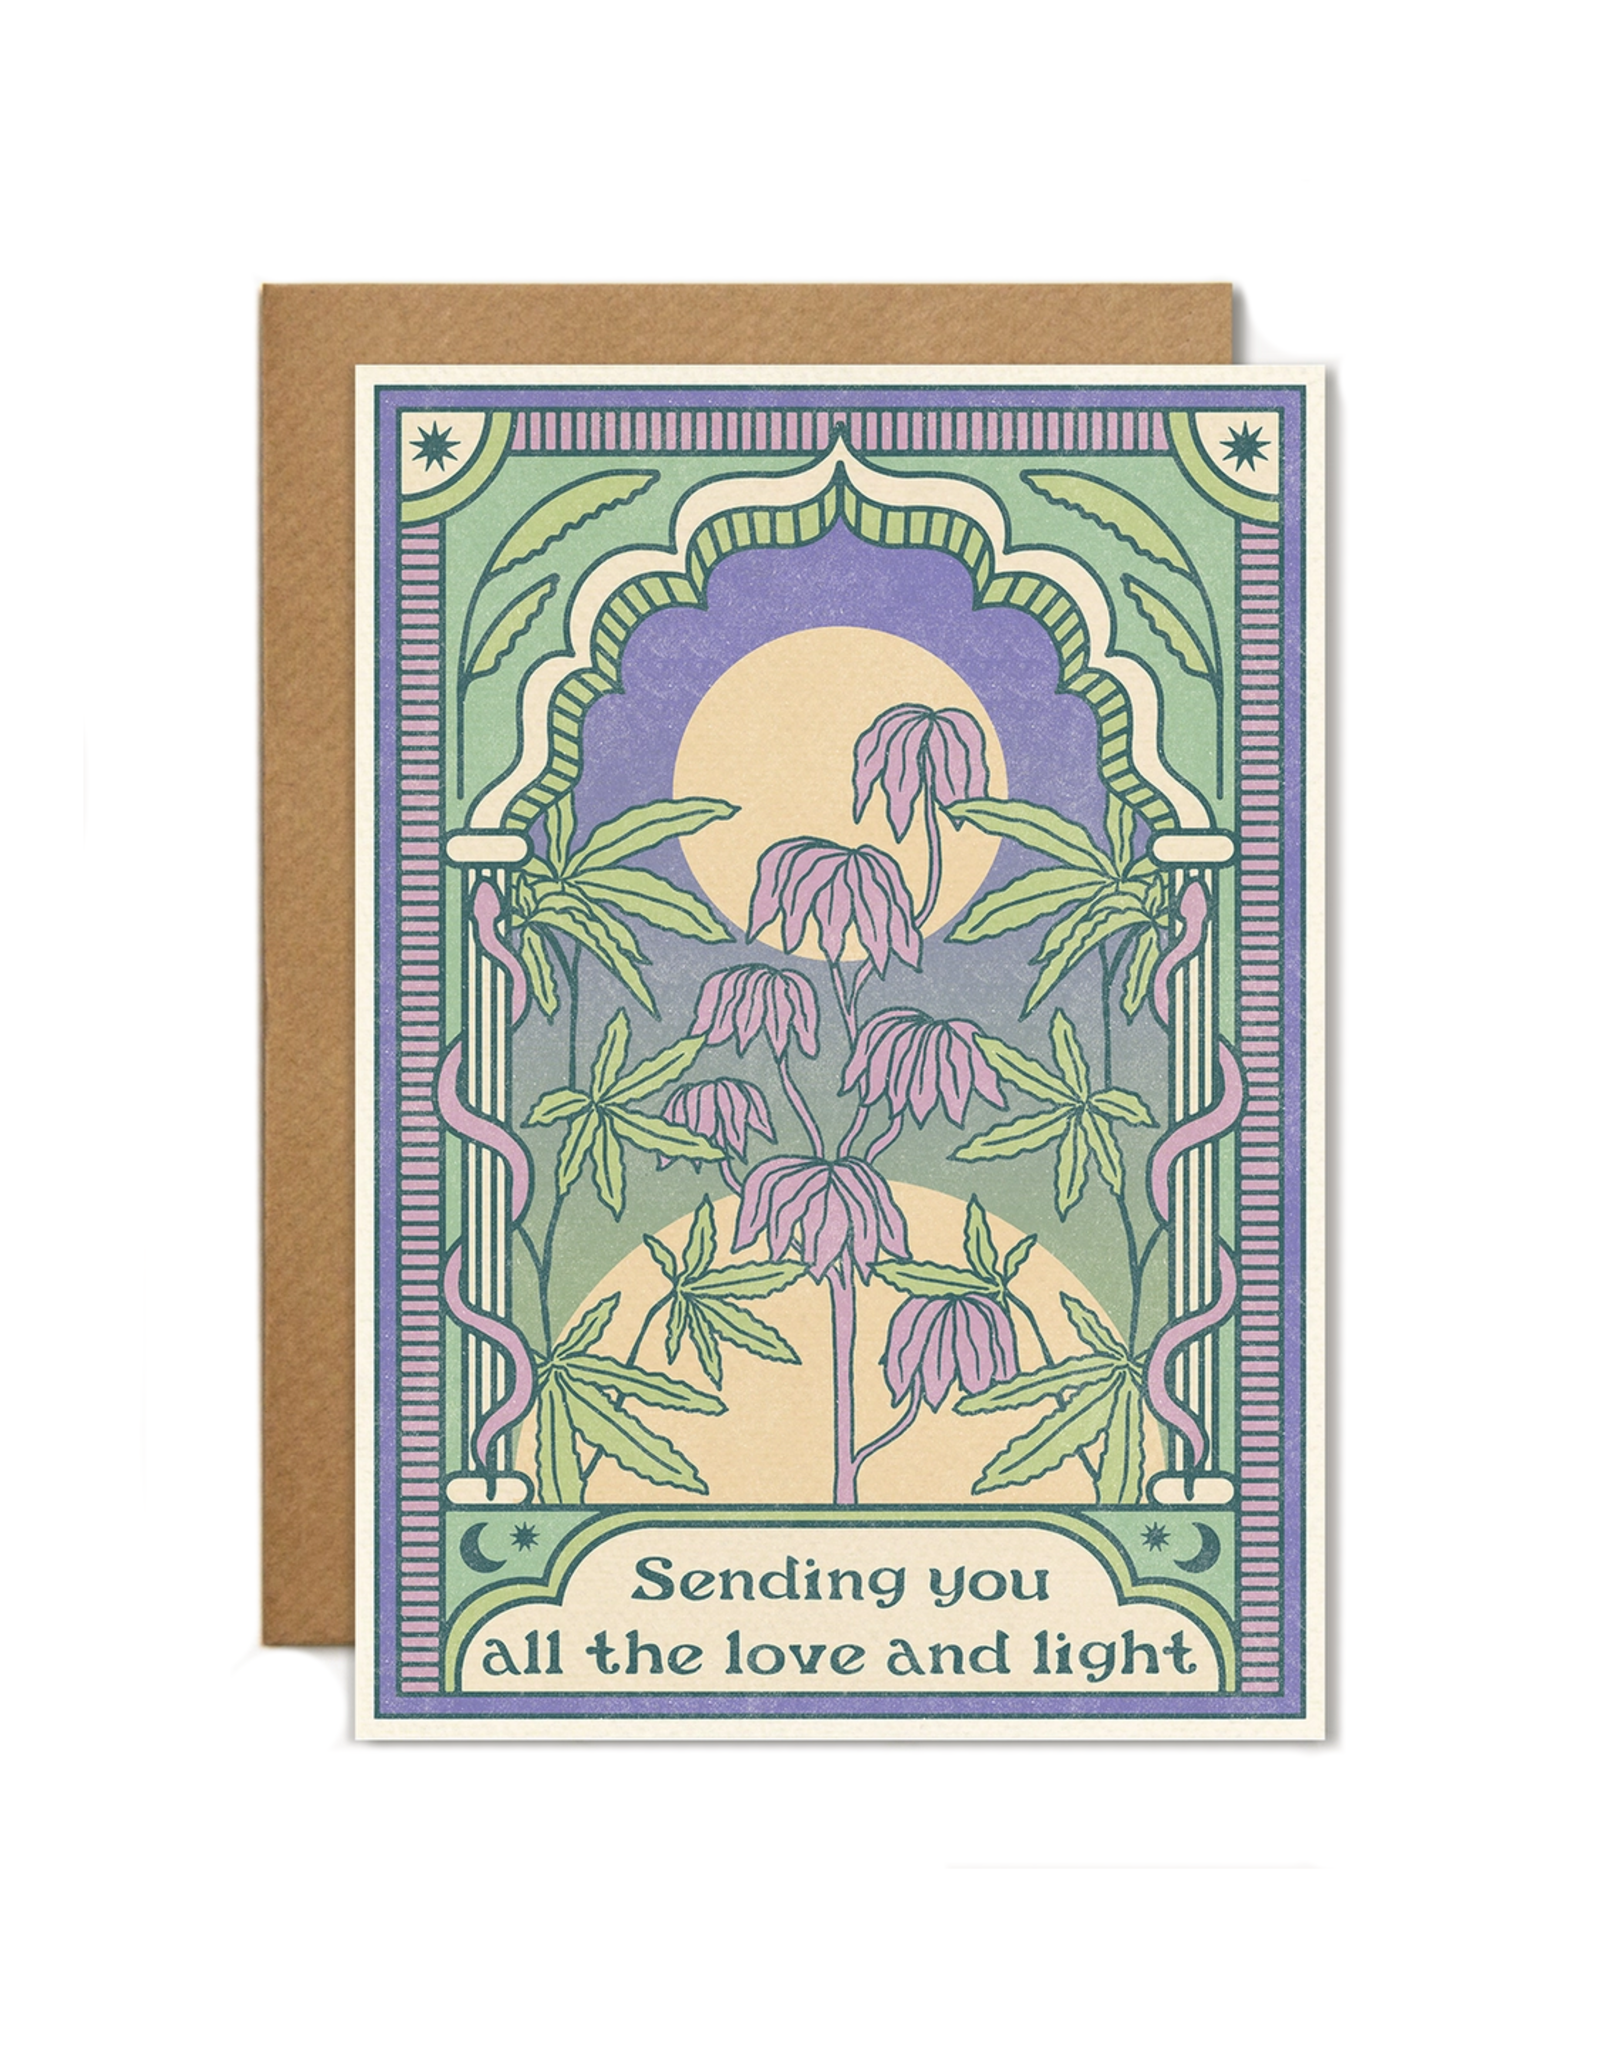 Cai & Jo Sending You All the Love and Light Greeting Card